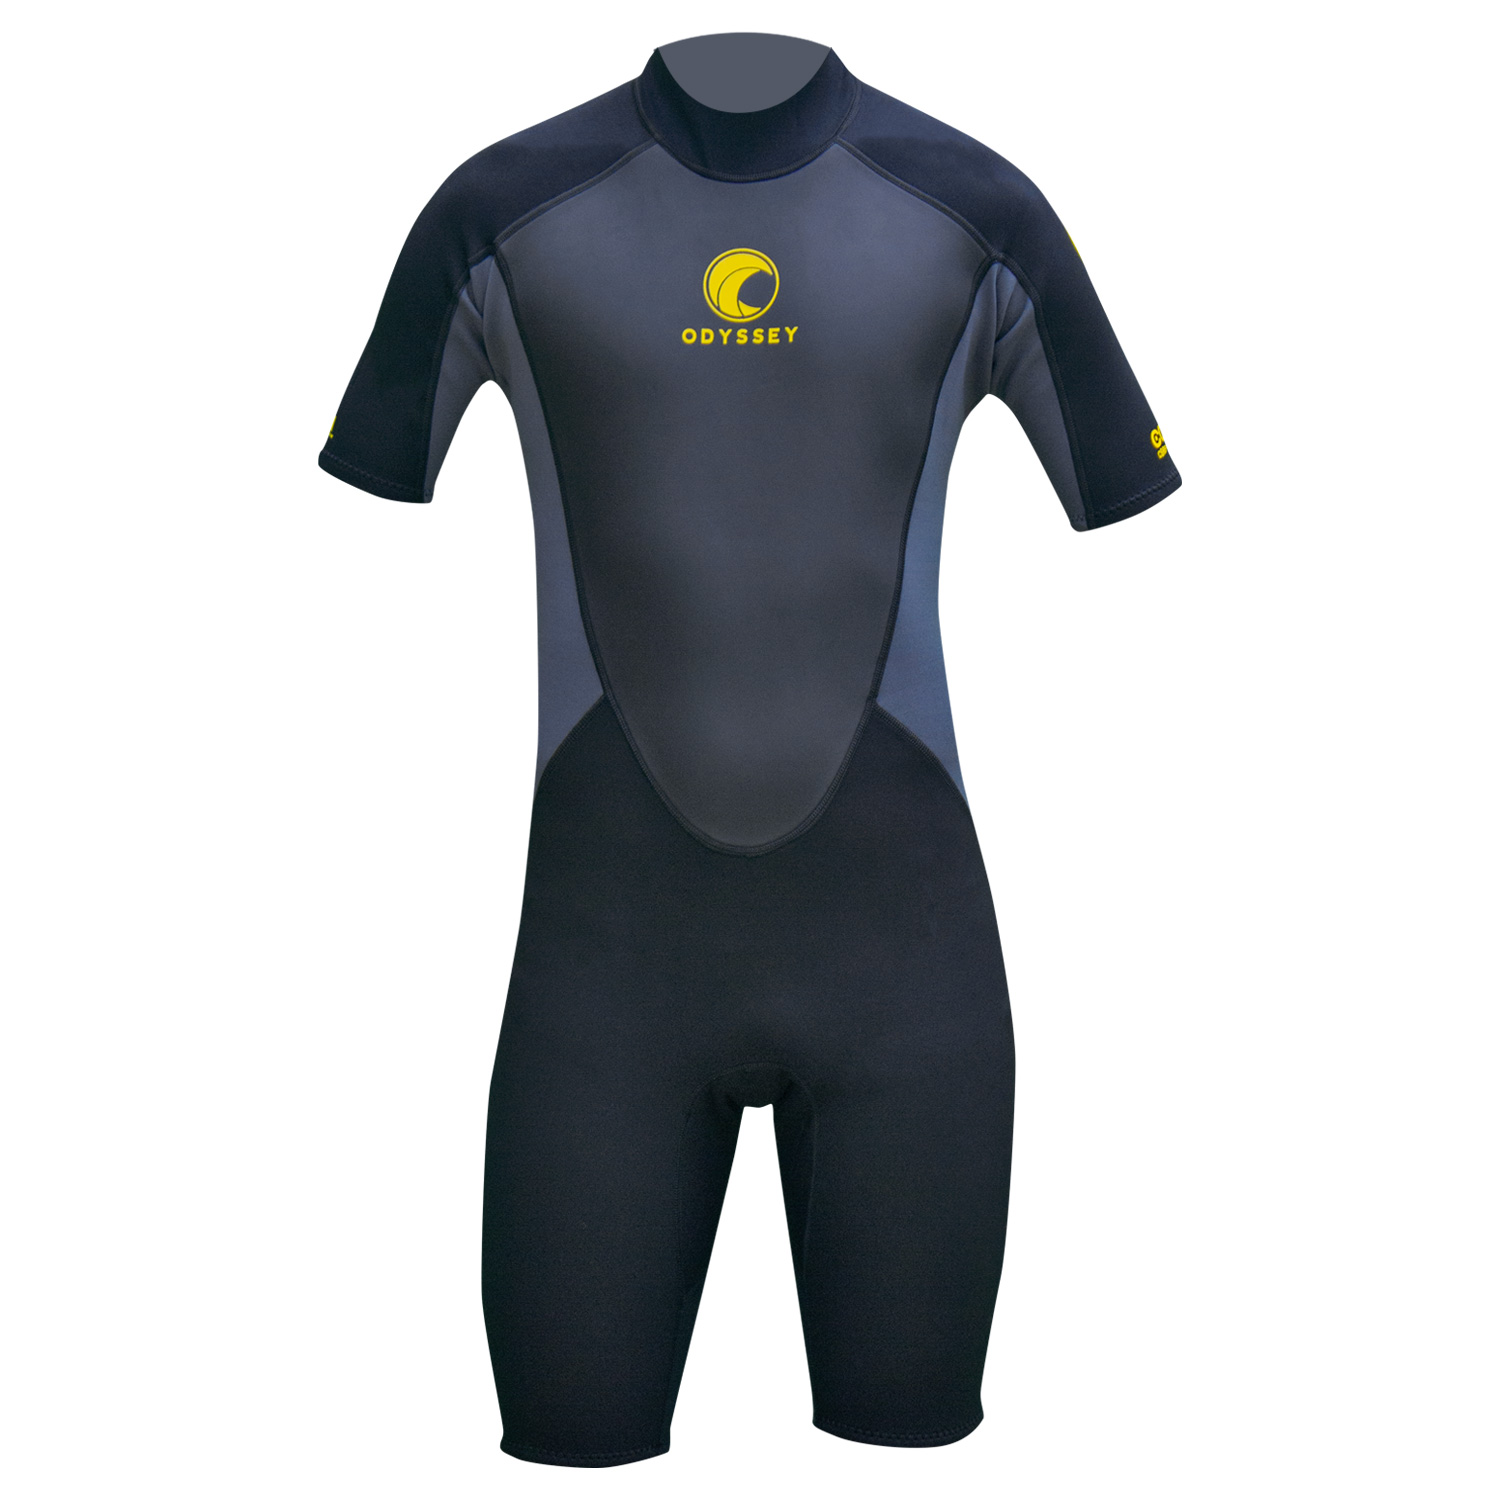 Odyssey-Core-3-2mm-Mens-Shorty-Wetsuit-Surf-Swim-Kayak-Shortie-Wet-Suit-S-XXL thumbnail 26